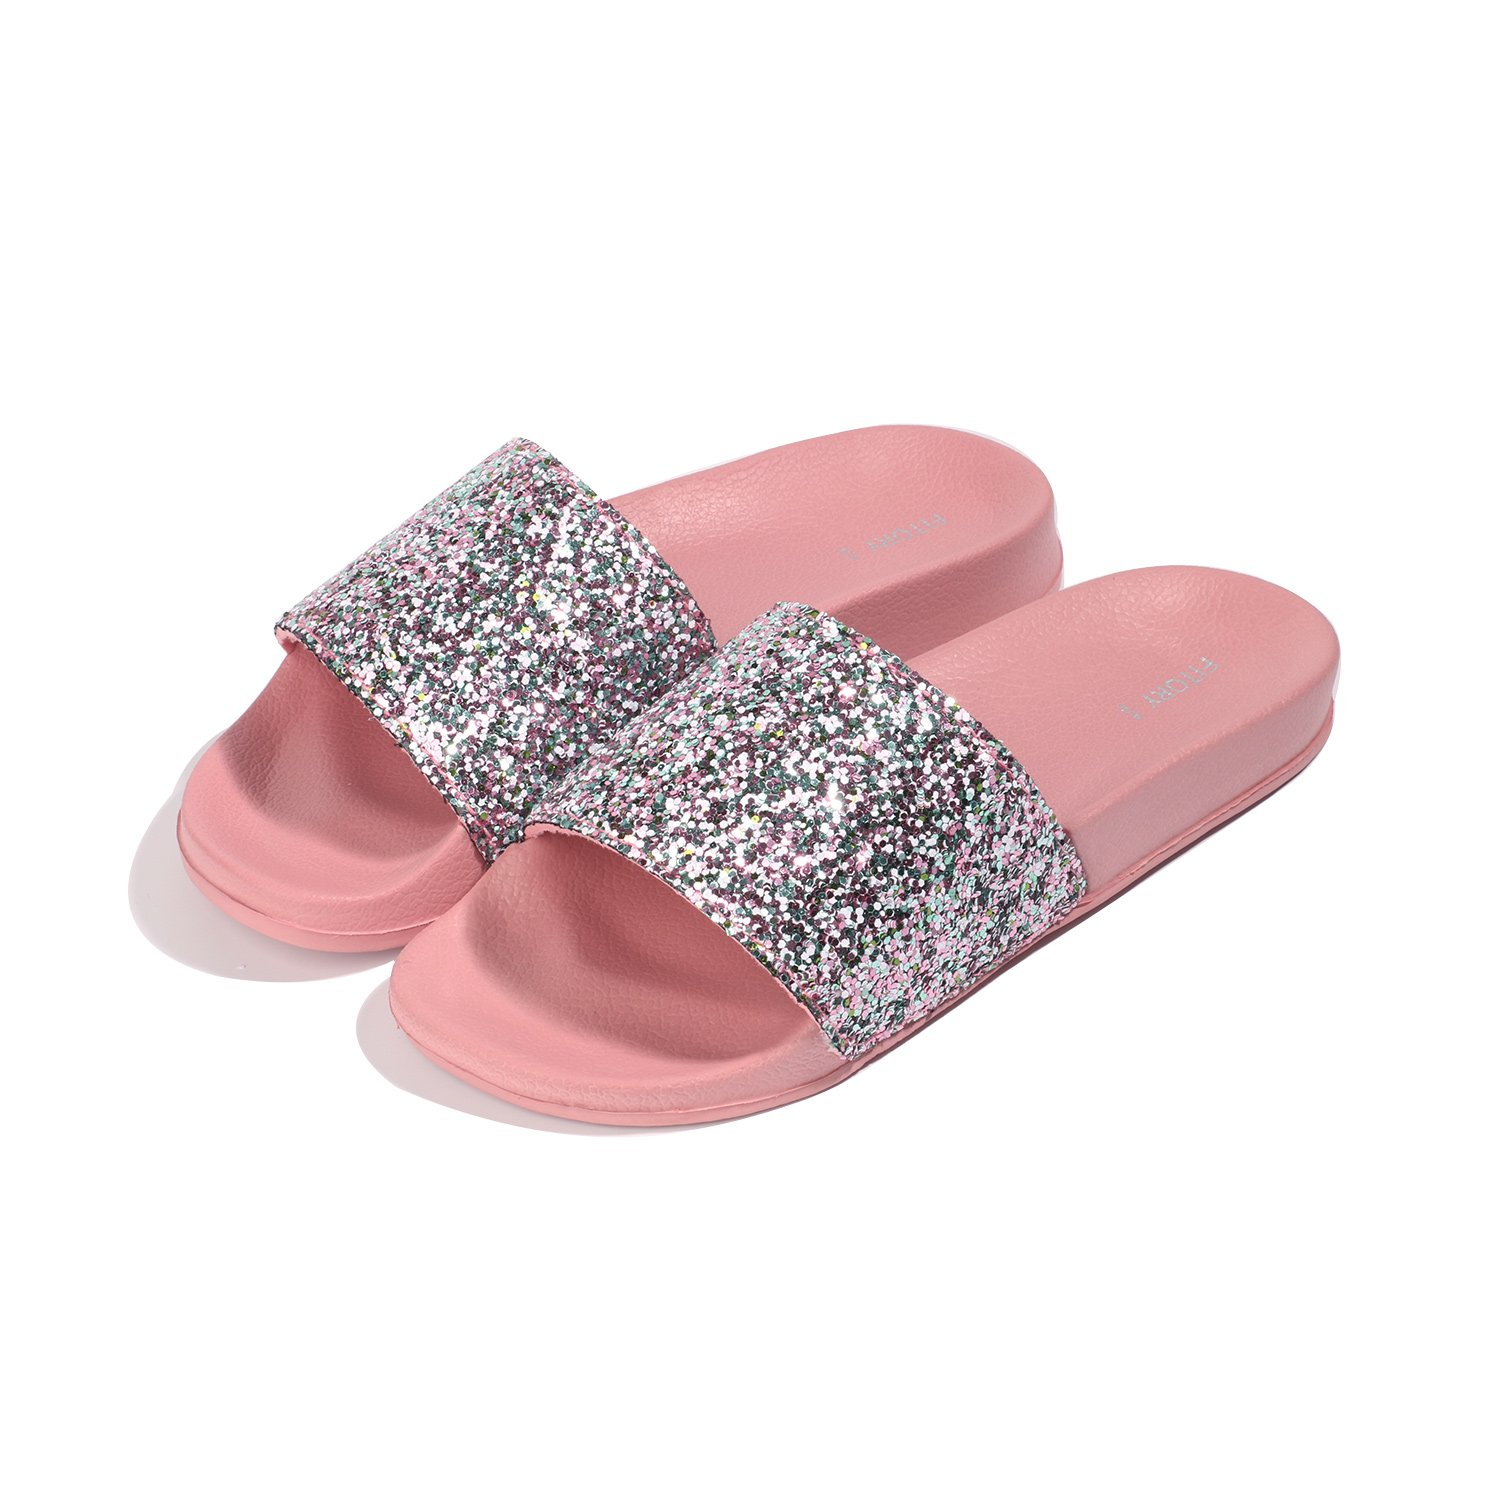 f37b3807b FITORY Women Slides, Sparkly Glitter Arch Support Slippers with Bling Slip  on Flats Sandals for Summer Pink: Amazon.ca: Shoes & Handbags